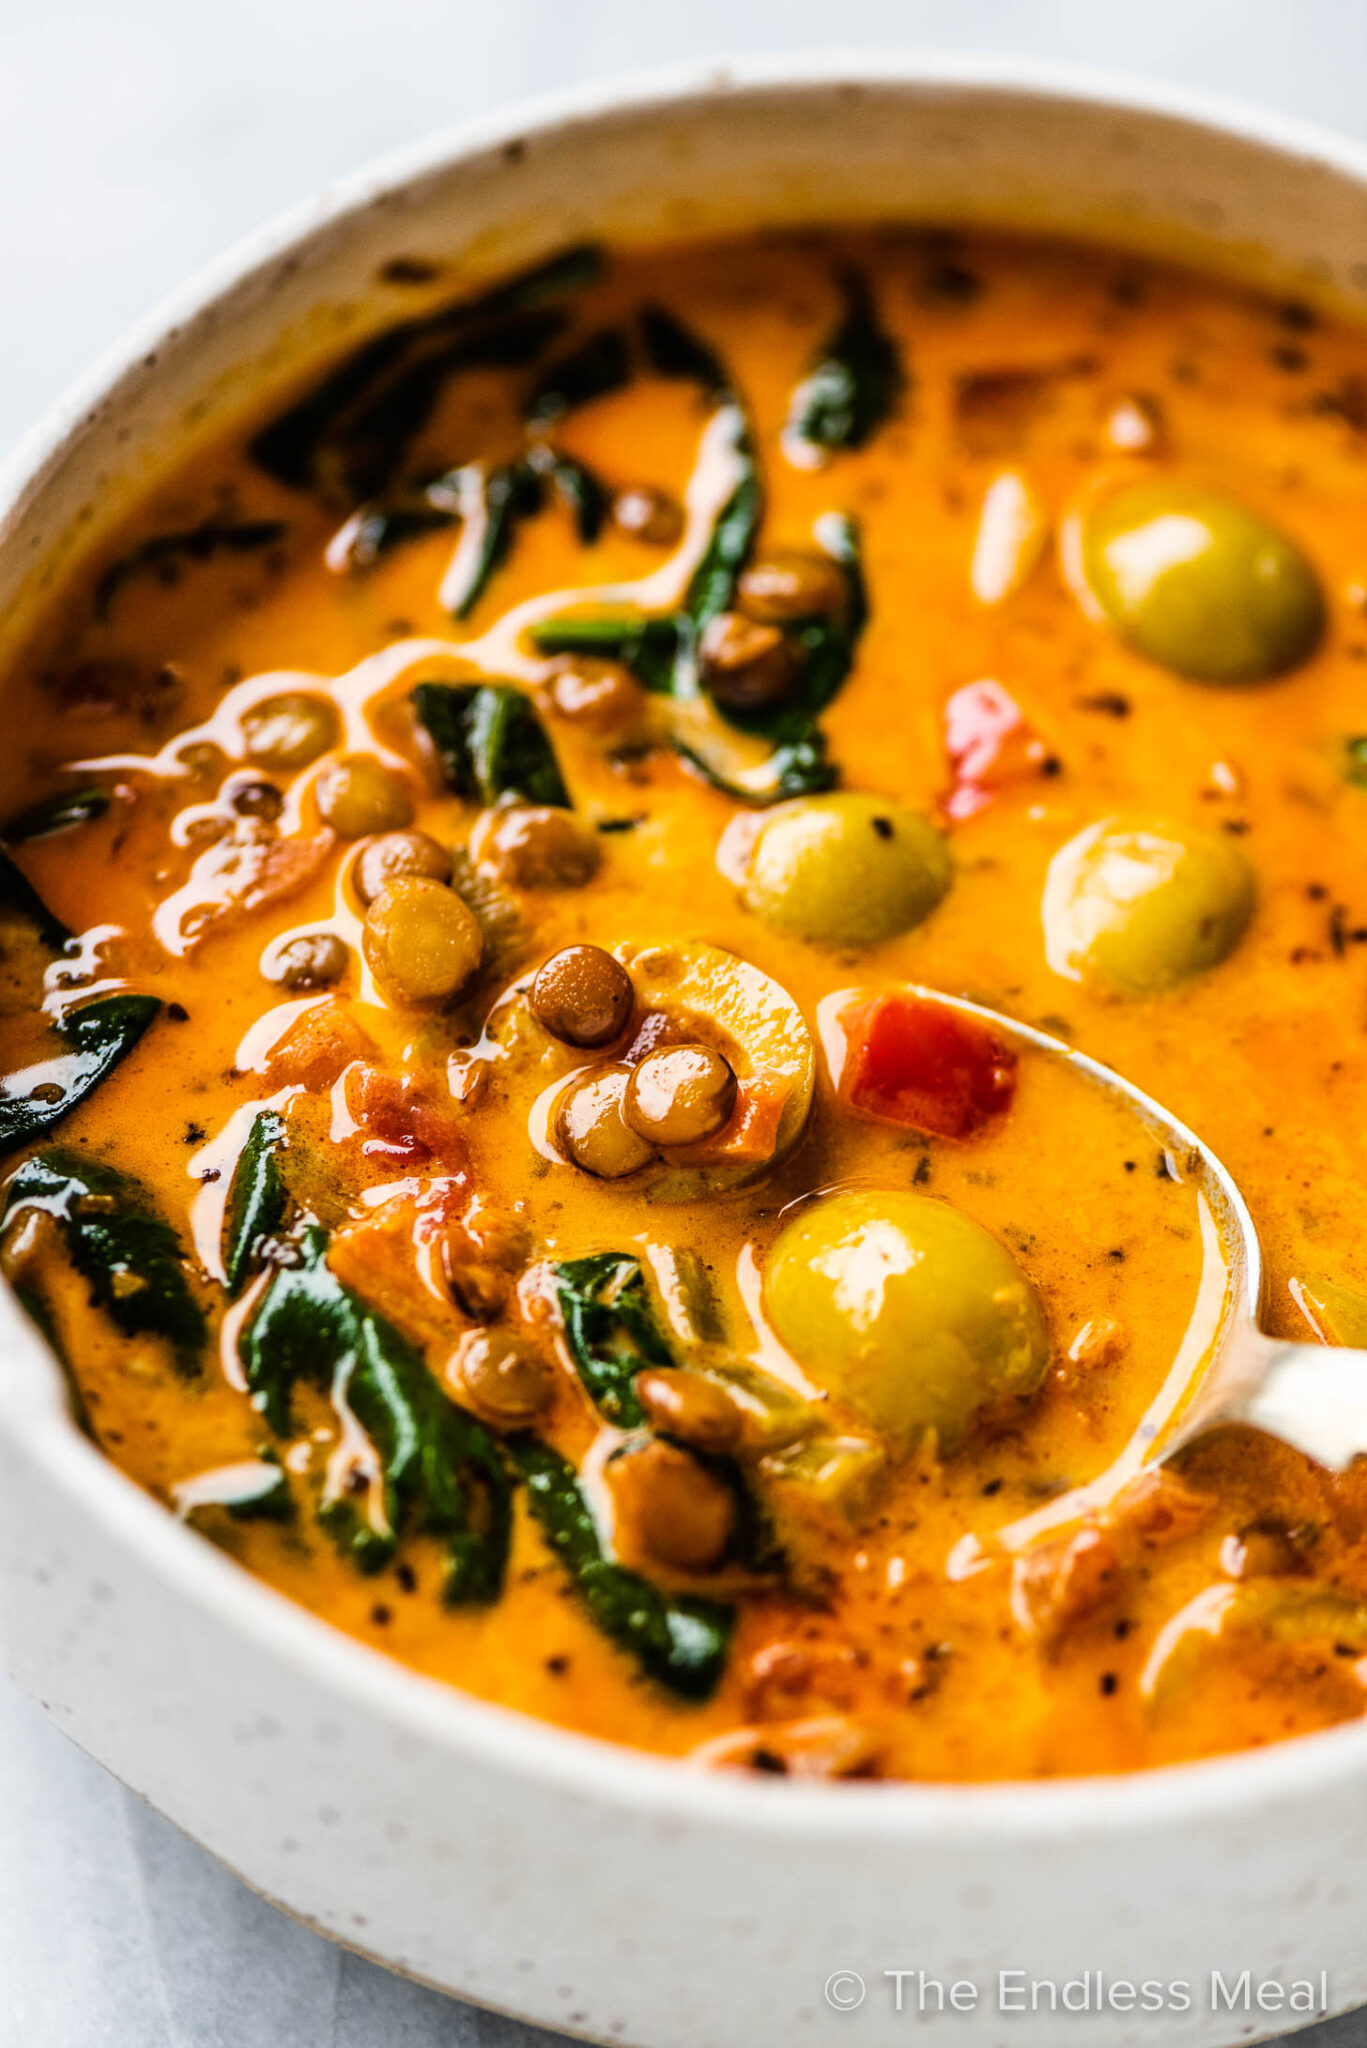 A spoon in a bowl of tomato lentil soup with olives.